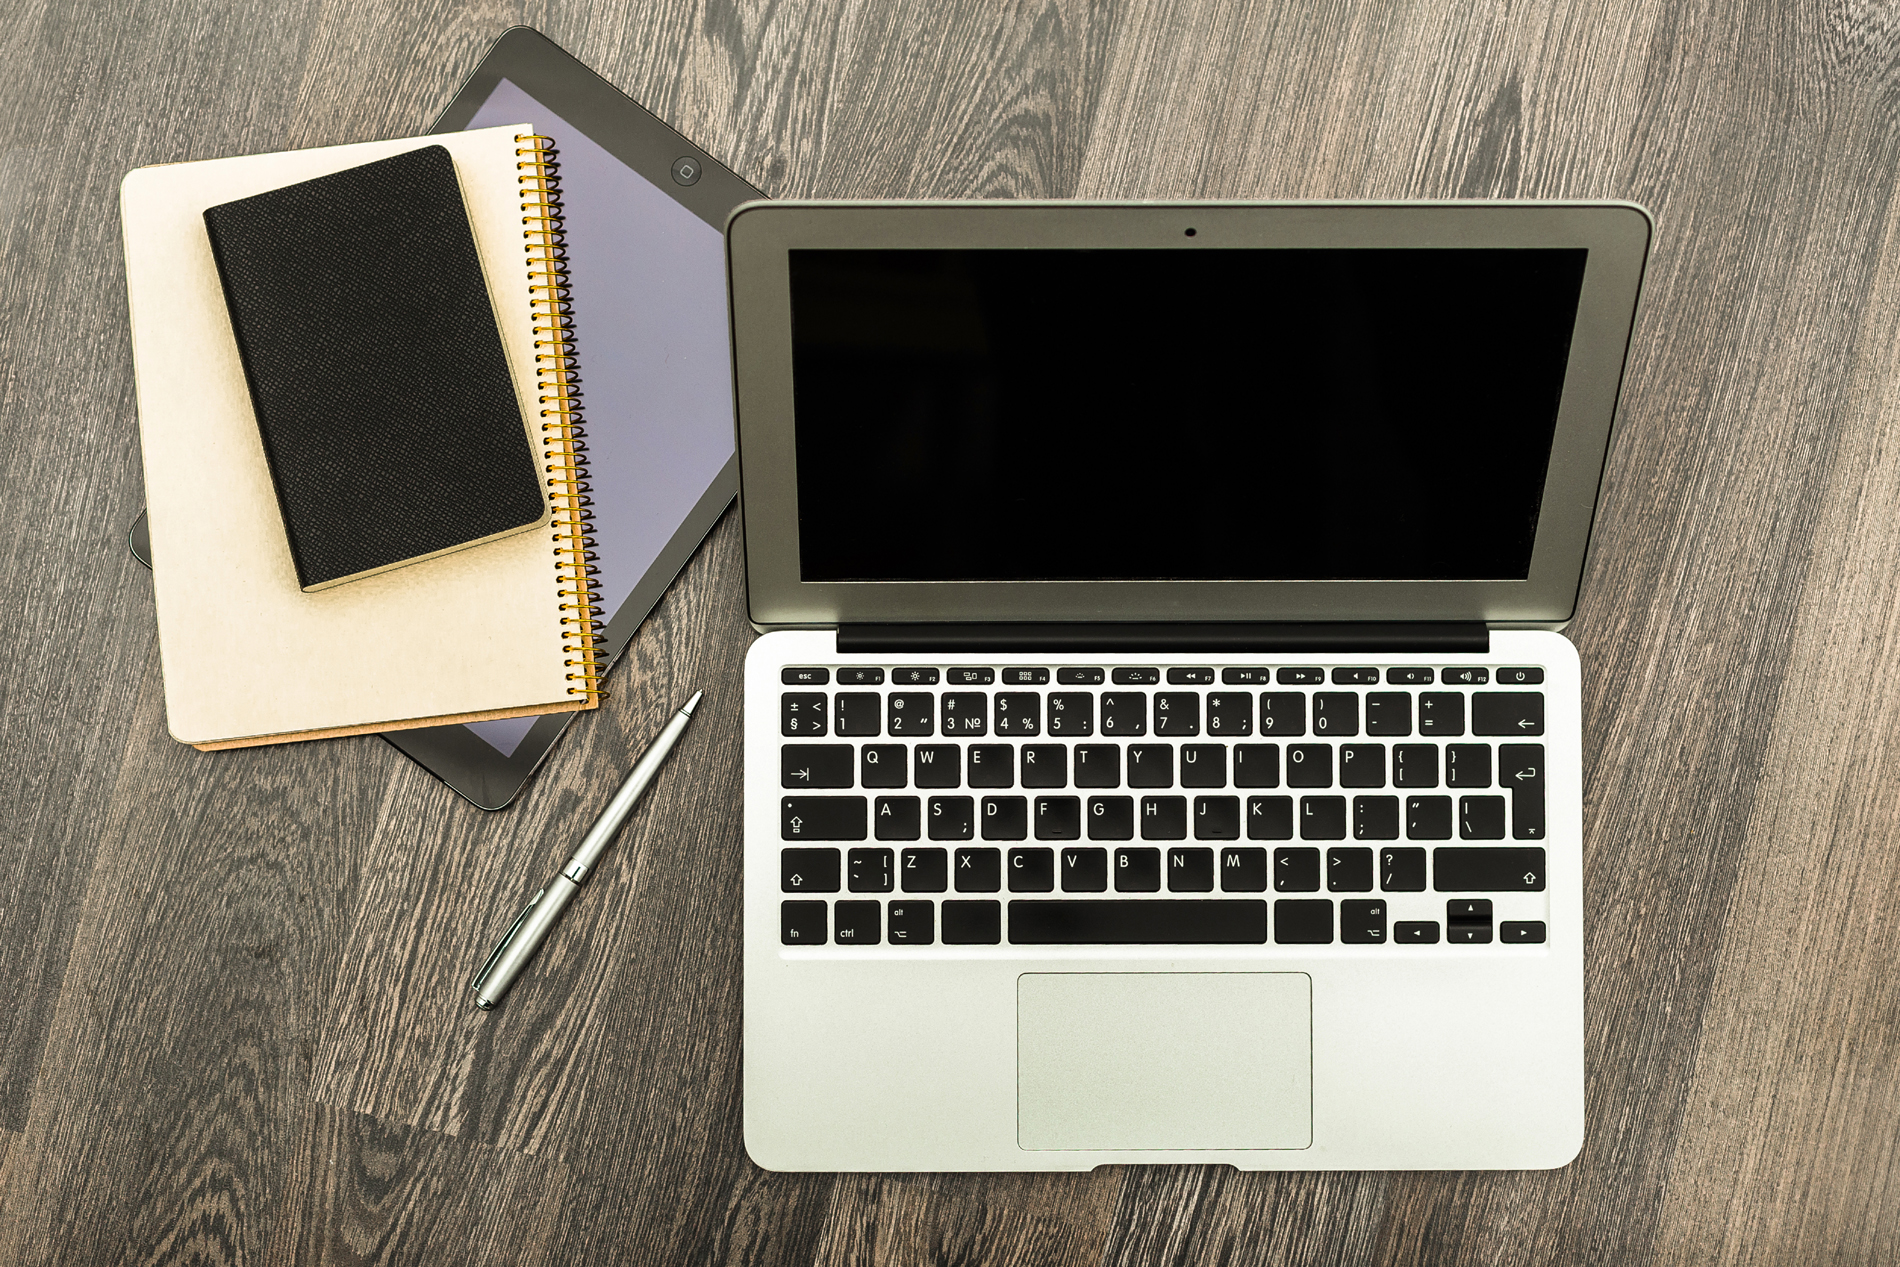 Notebook and laptop 53556